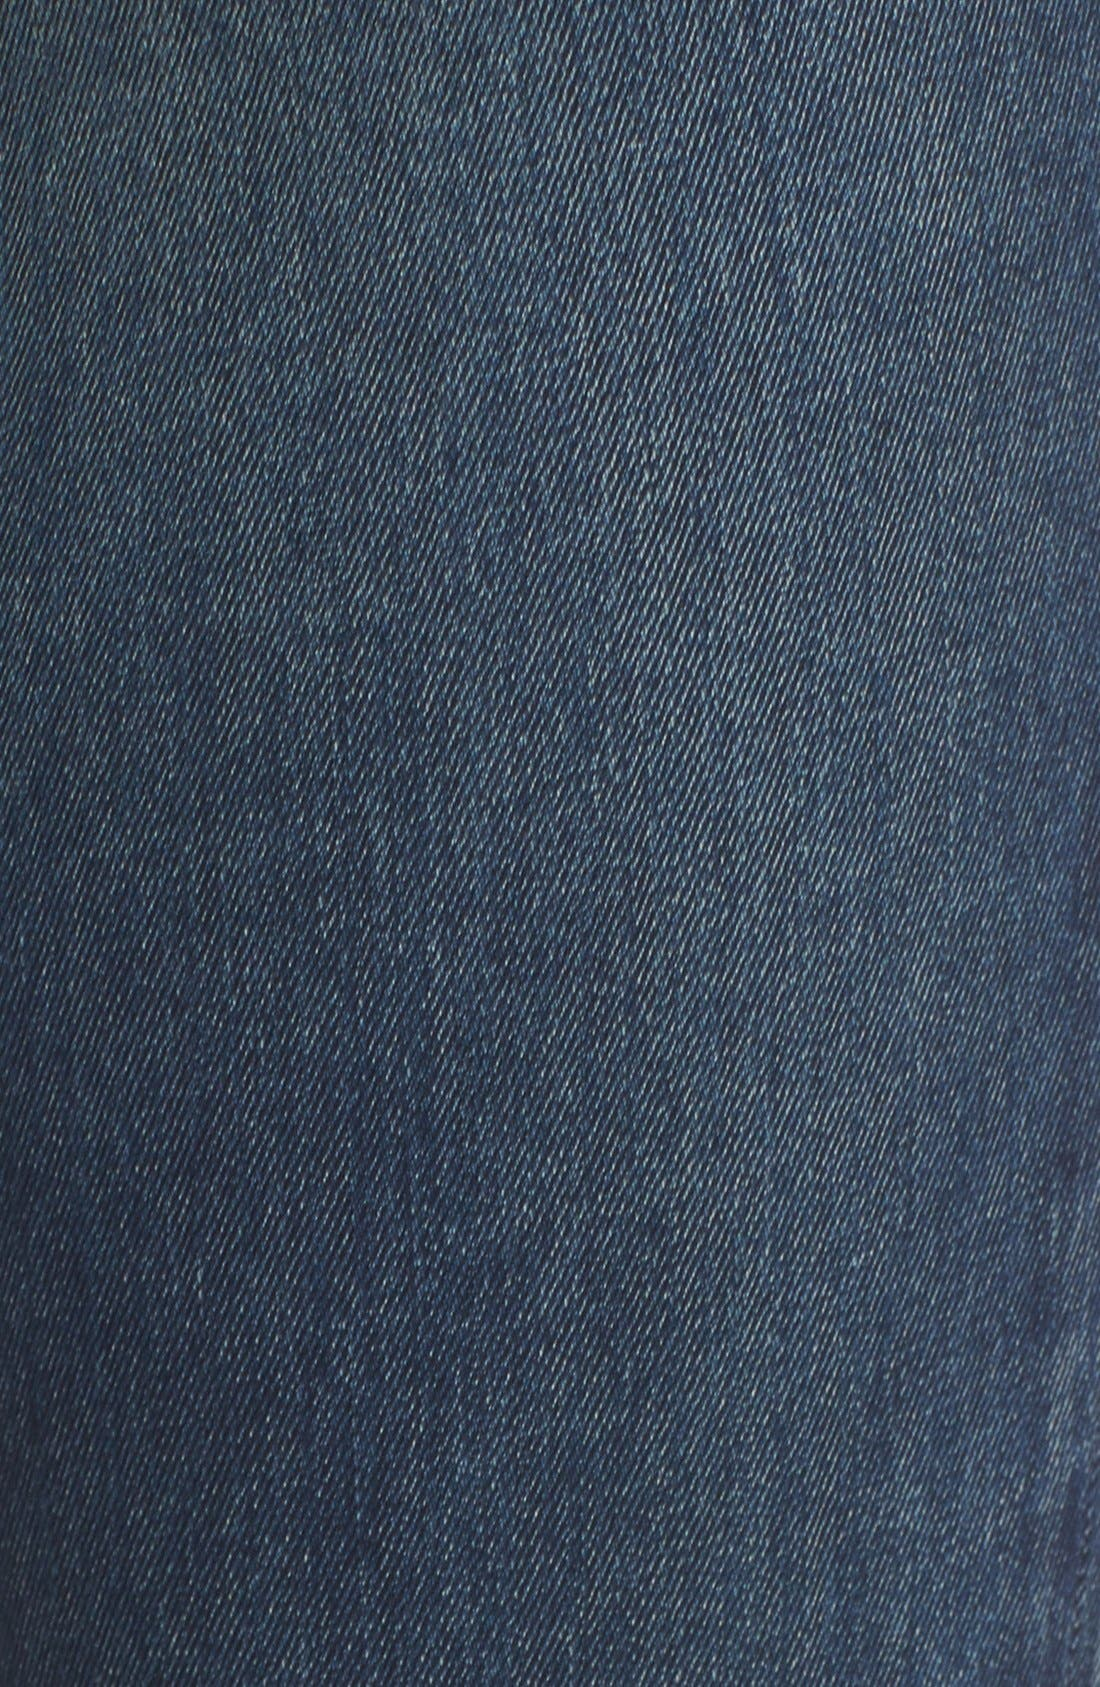 Skinny Jeans,                             Alternate thumbnail 2, color,                             401